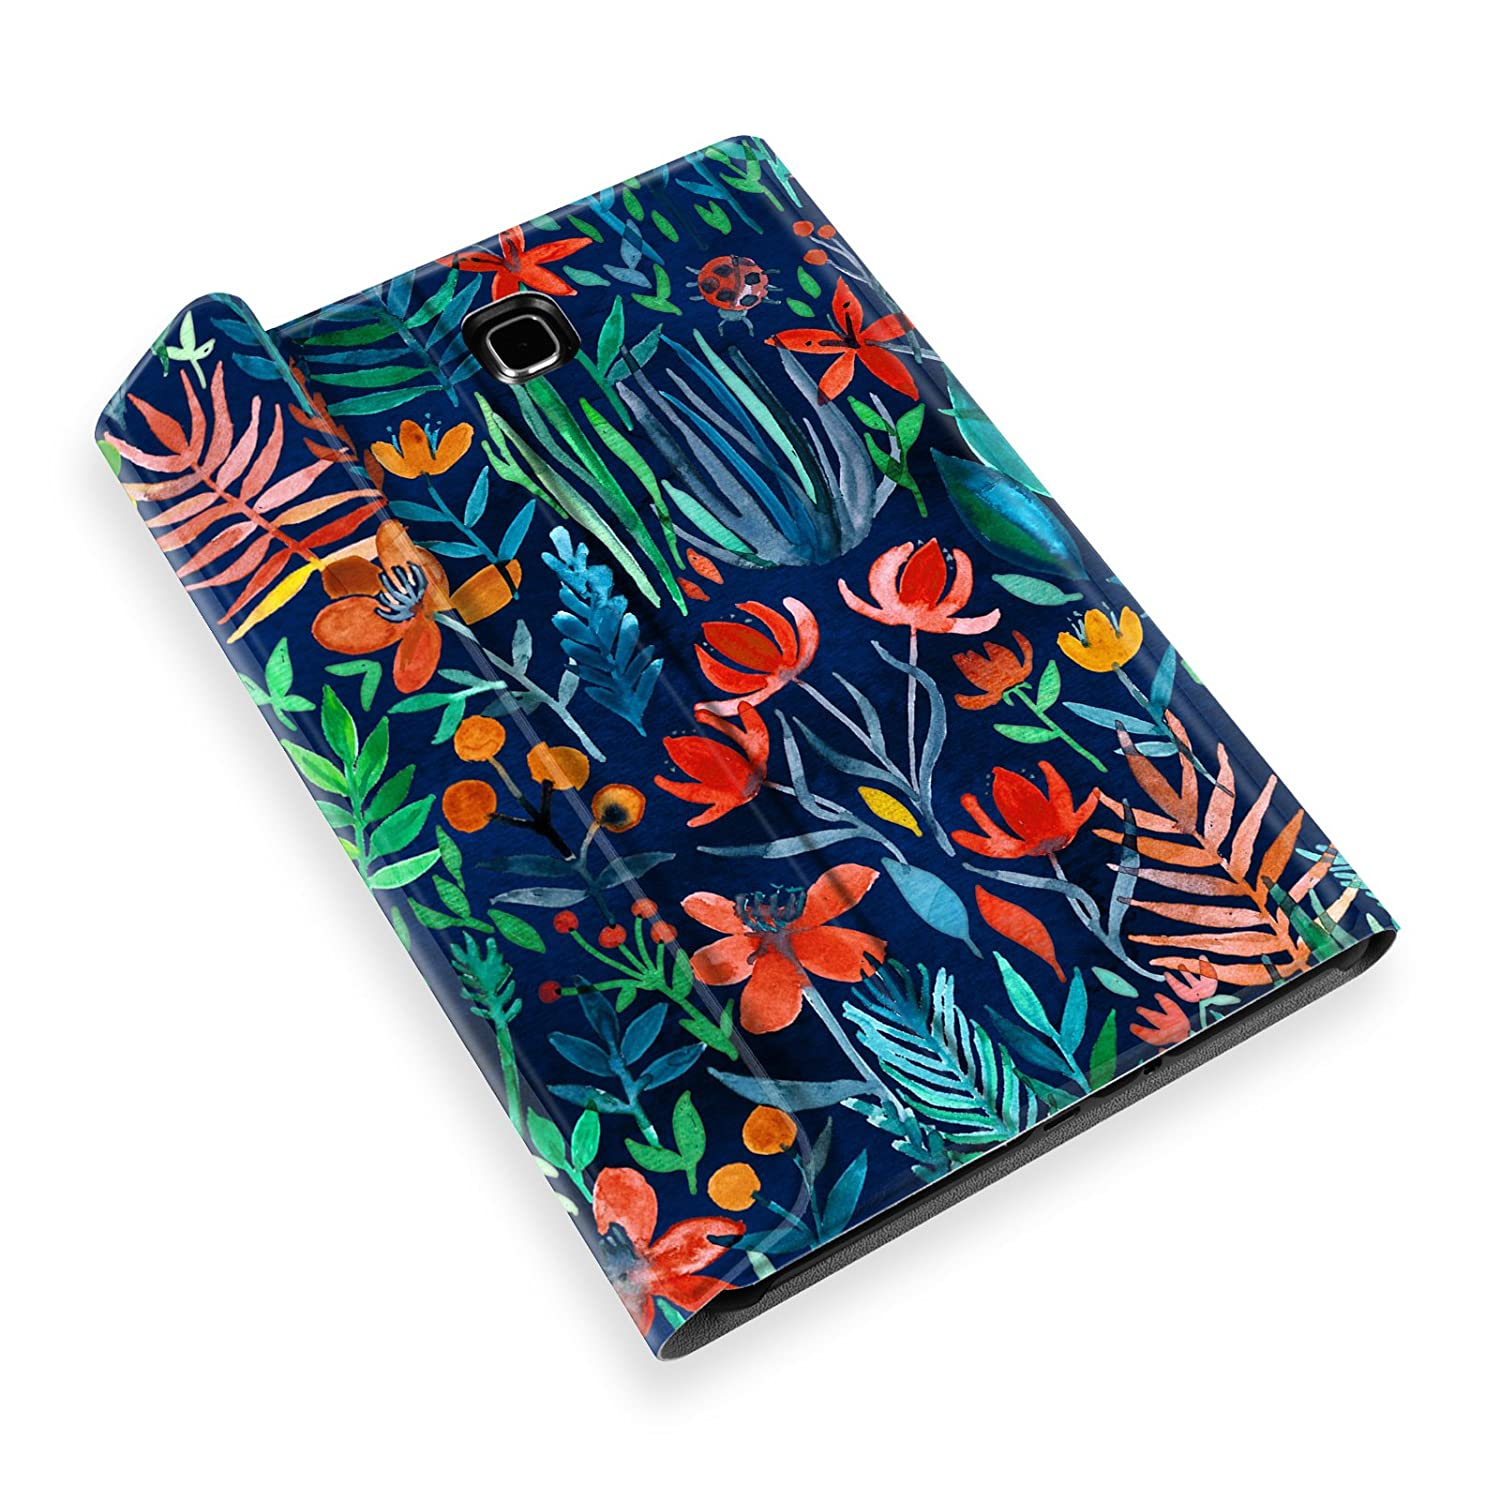 Jungle Night Fintie Samsung Galaxy Tab A 8.0 Keyboard Case SM-T350//T355//P350//P355 2015 Slim Shell Light Weight Stand Cover with Magnetically Detachable Wireless Bluetooth Keyboard for Tab A 8.0